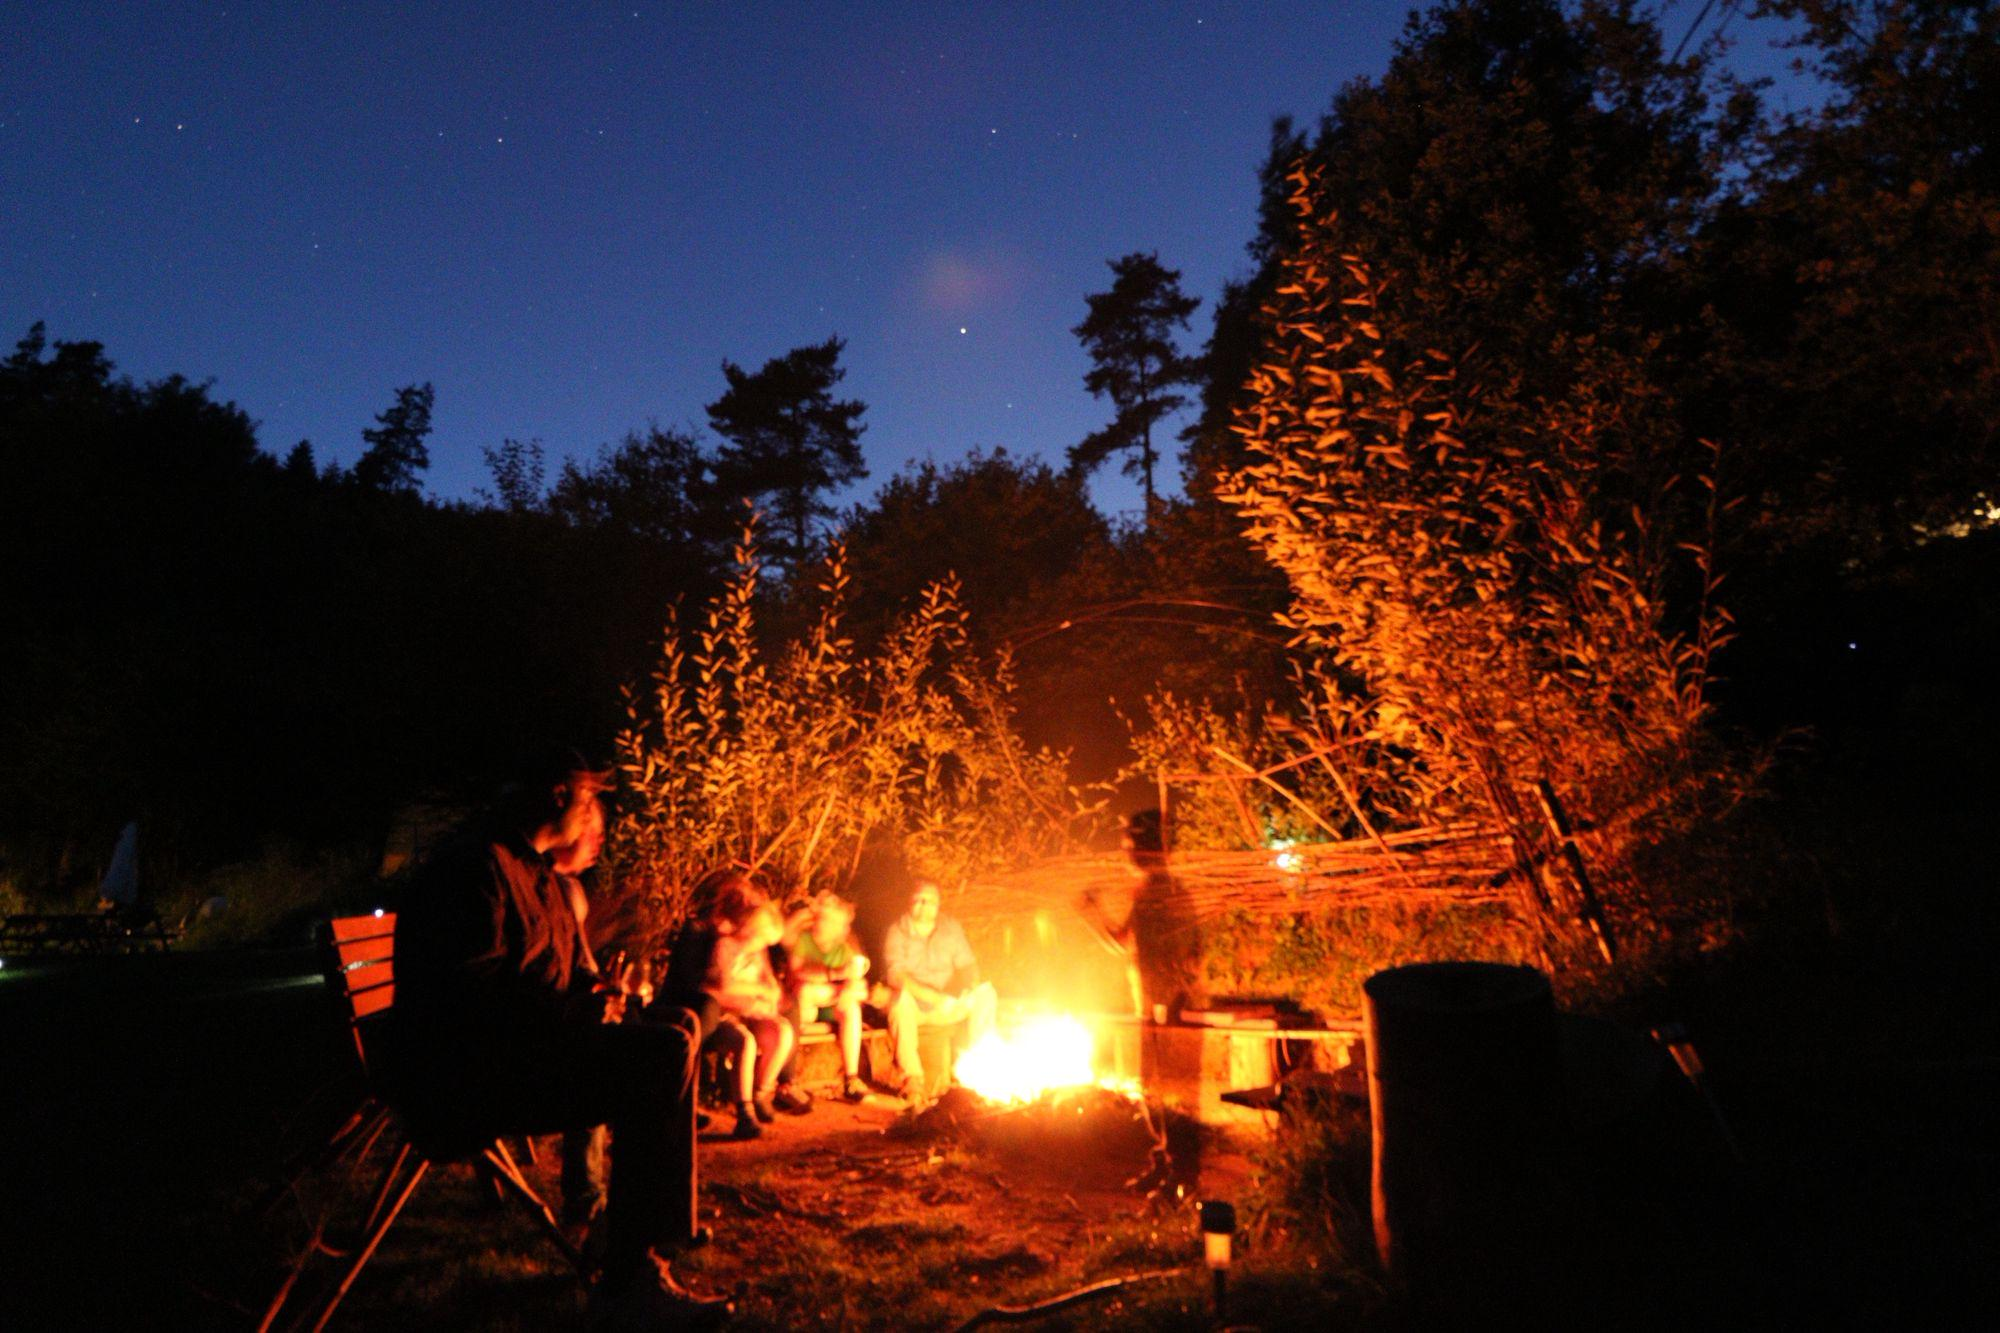 Campfire Campsites in France - camping with campfires in France